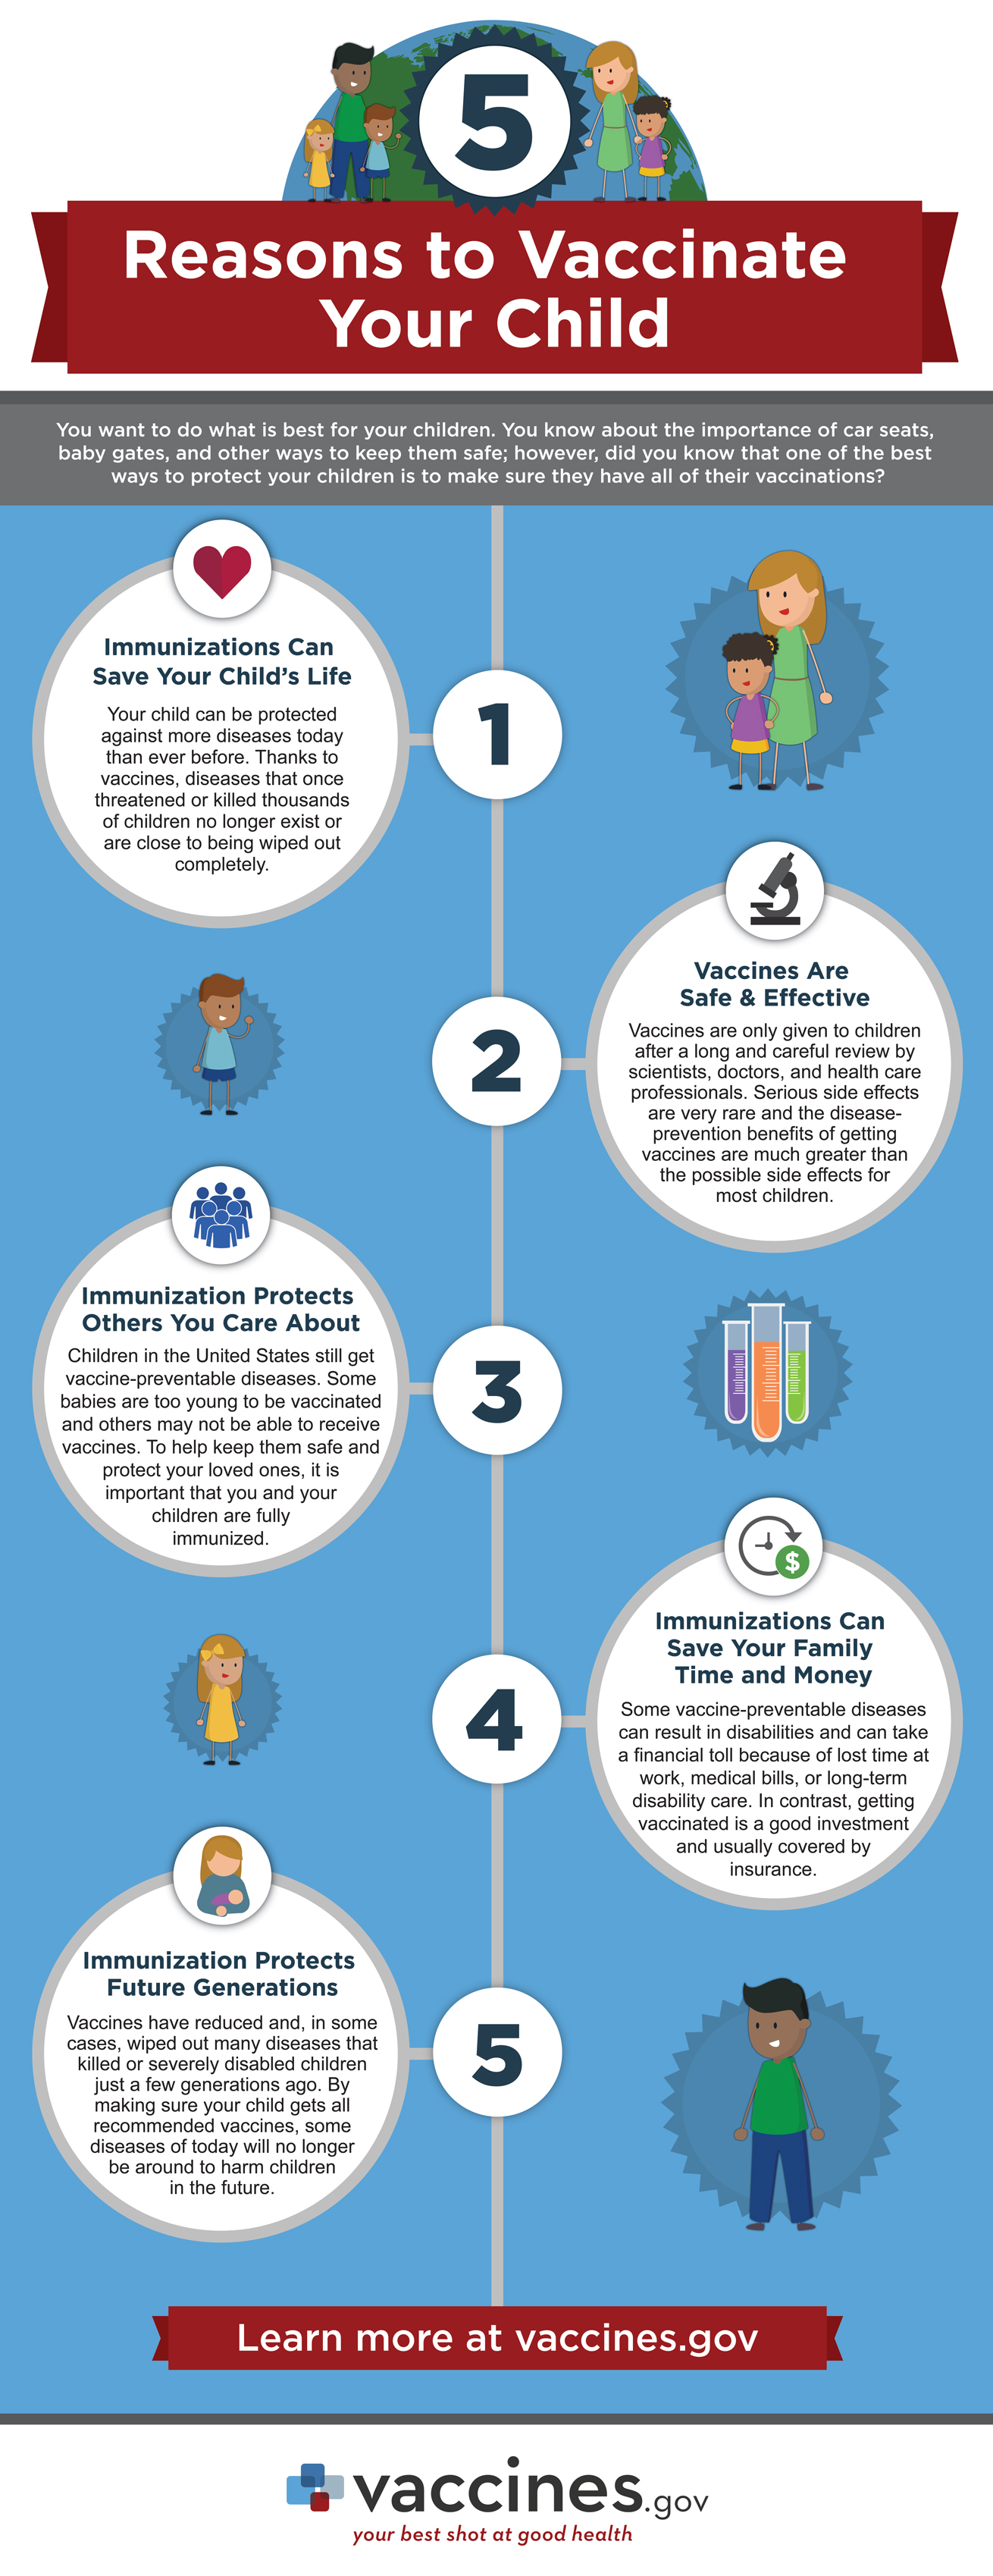 Infographic explaining the 5 reasons to vaccinate your child.